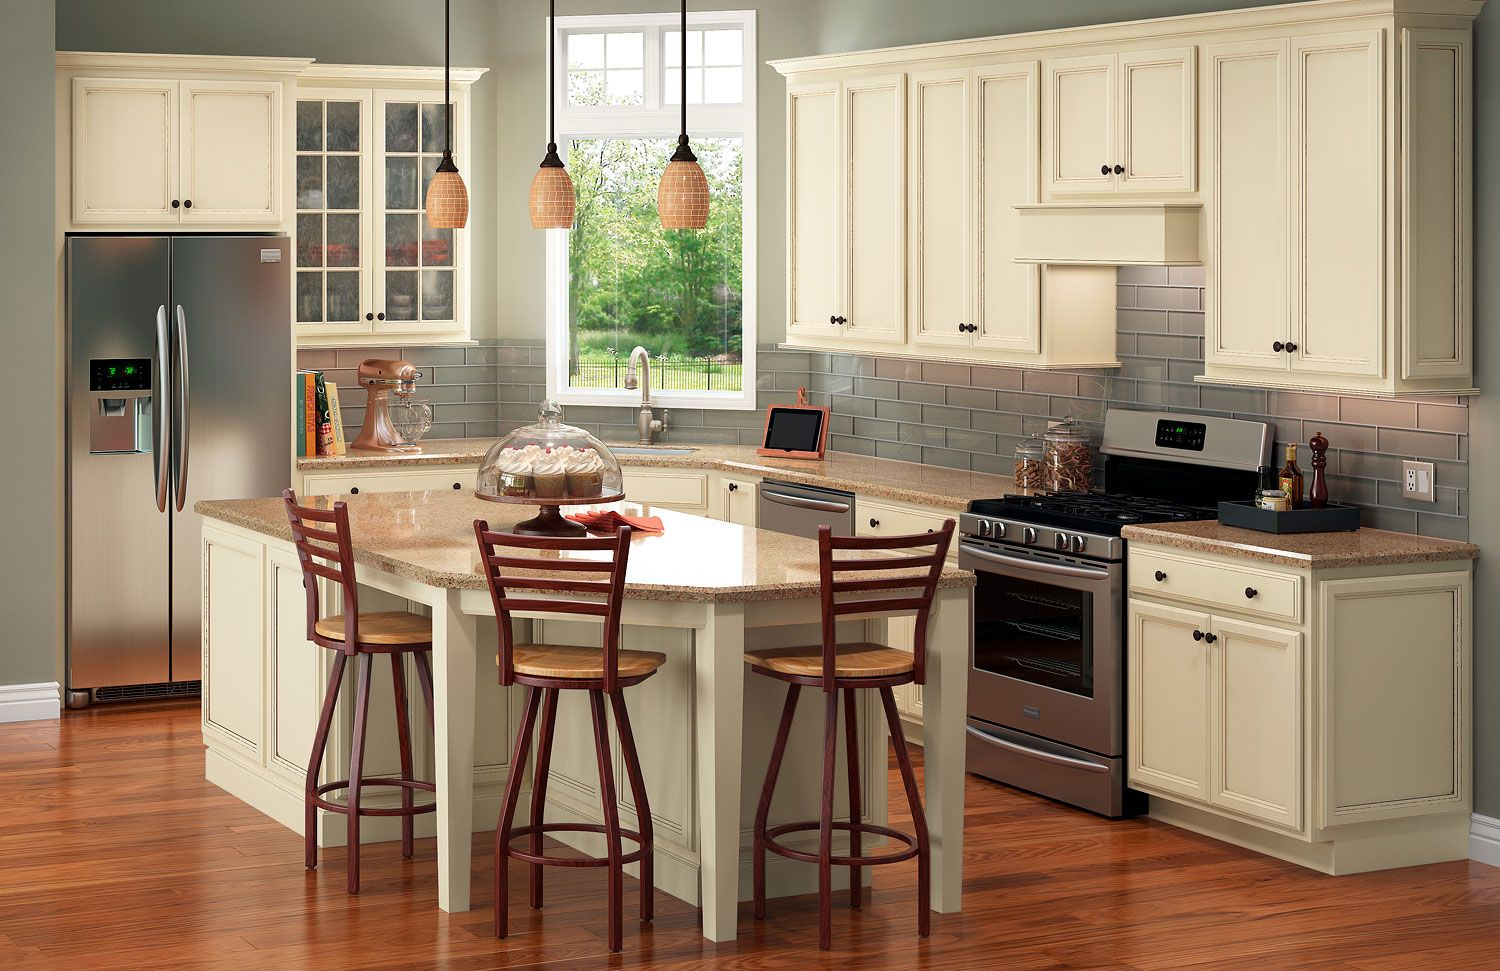 Cabinets Laundry And Bath Style Explore Tahoe Cabinet Finishes Features Options A Affordable Kitchen Remodeling Kitchen Remodel Building Kitchen Cabinets